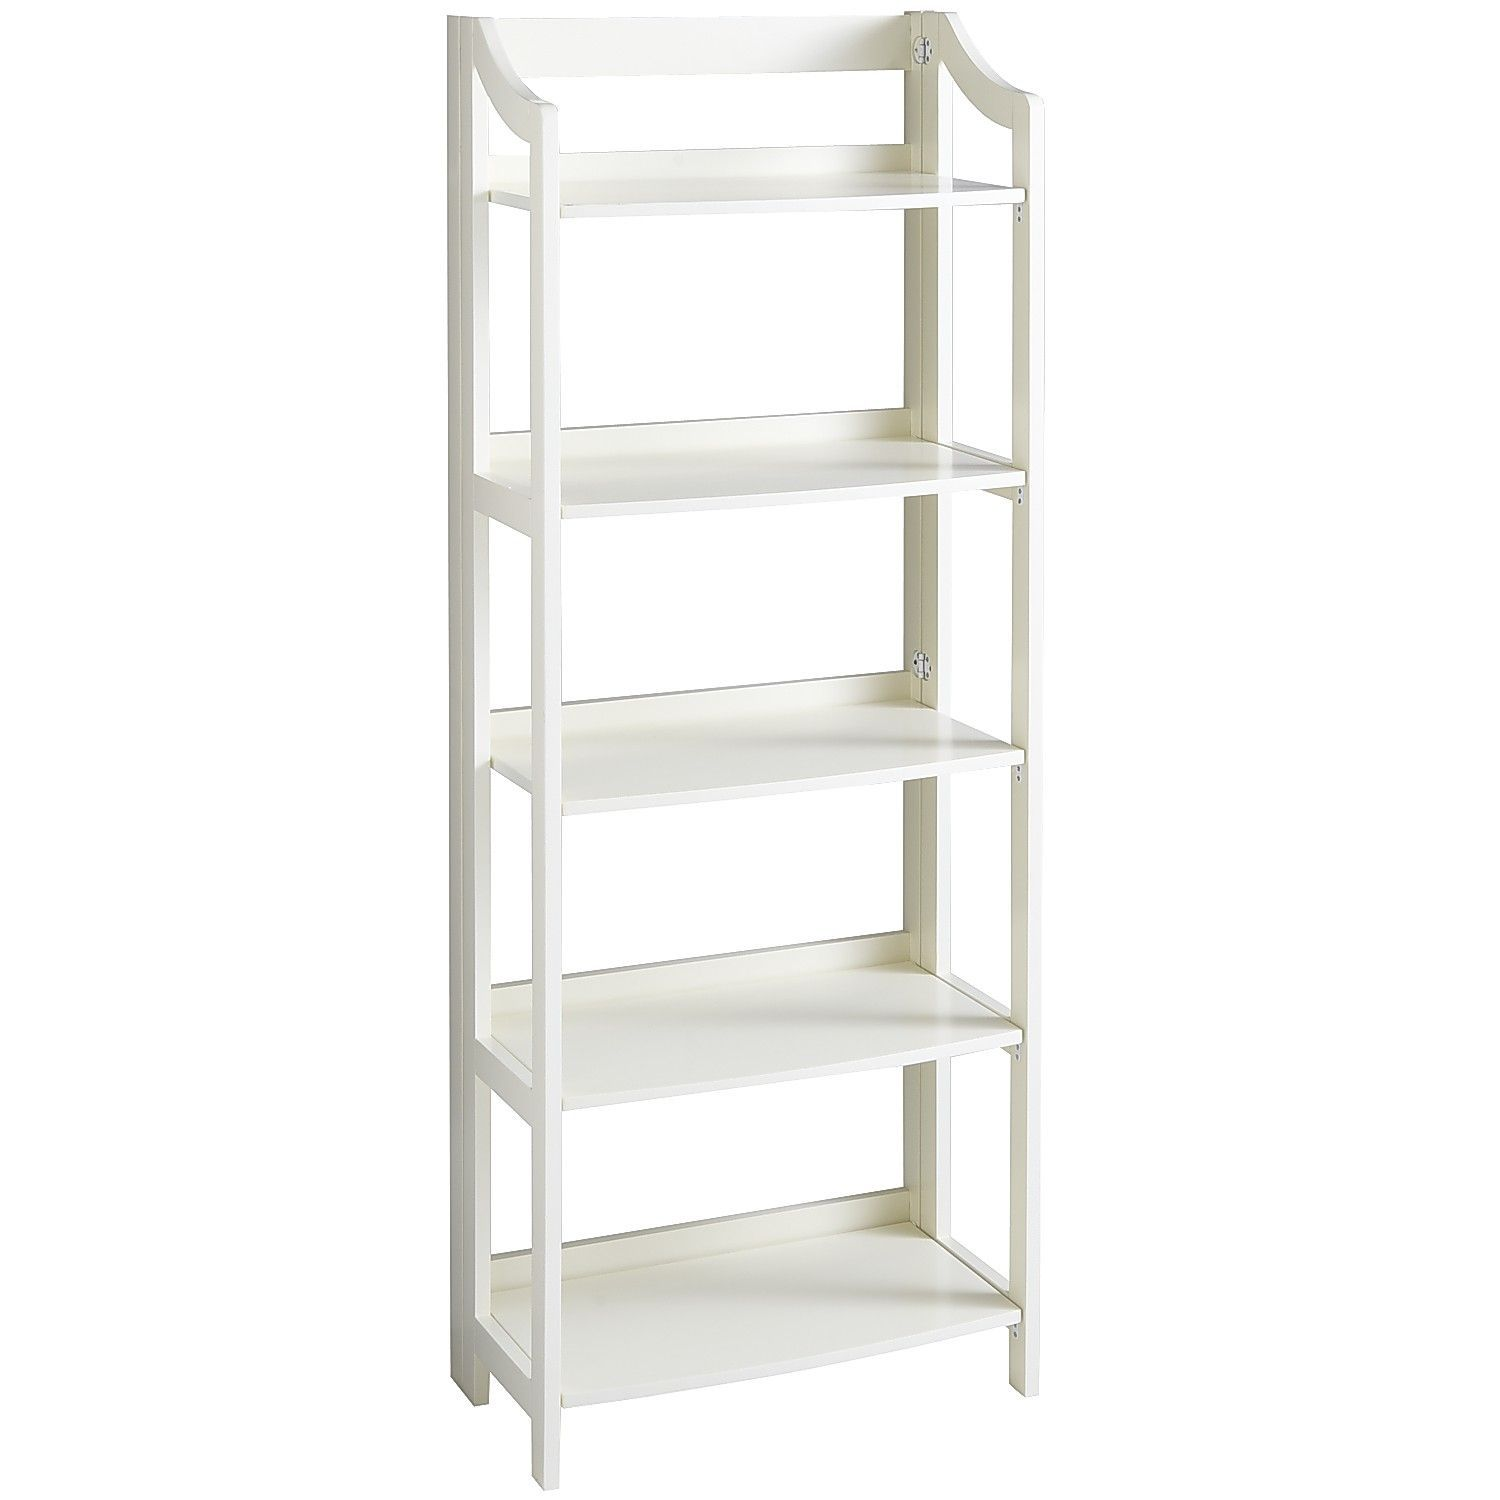 removable en freestanding solid volitare shelves customize shelf your cabinet wood tray unit modular na s x in bookcases off storage shelving tall coquo bookcase white oak product